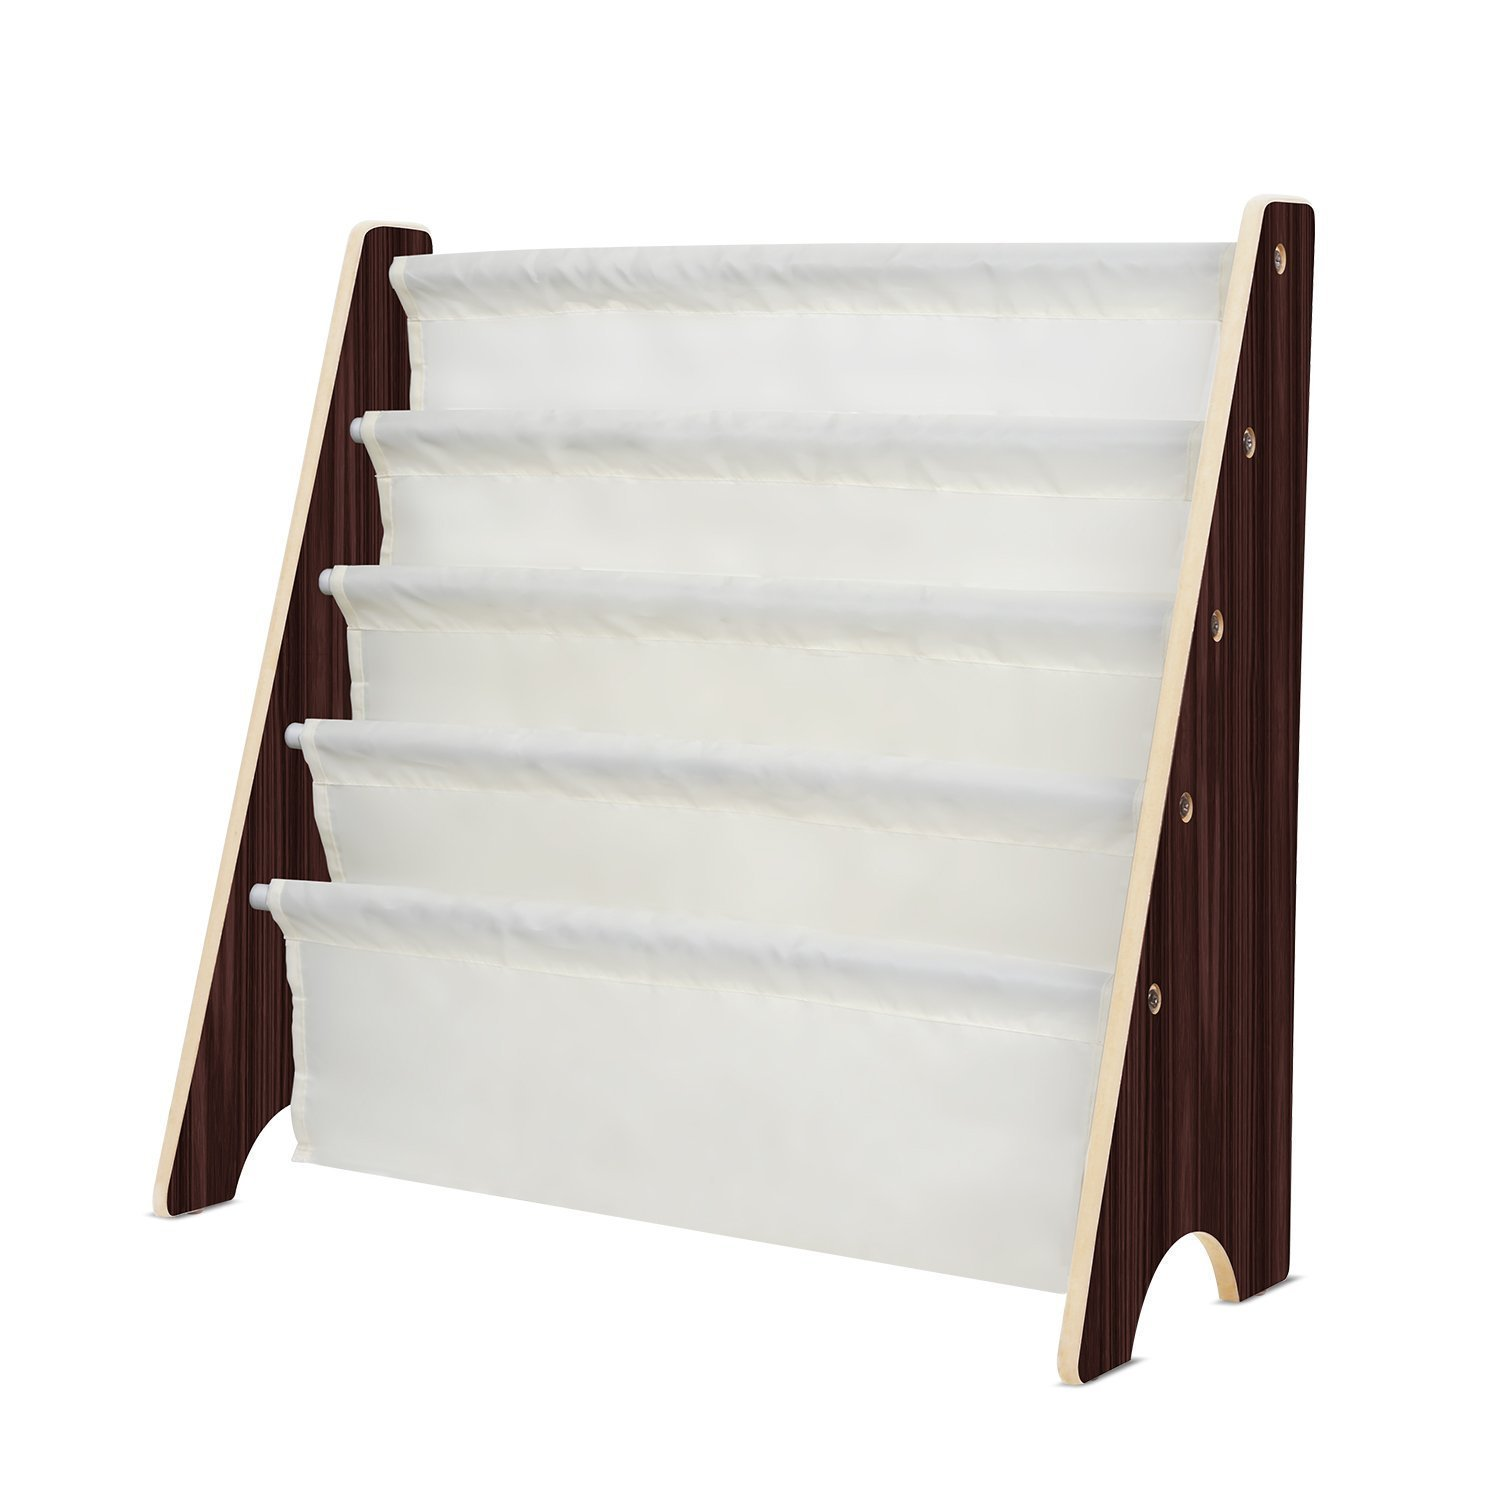 Homfa Storage Sling Bookshelf Toy Display, Espresso / White